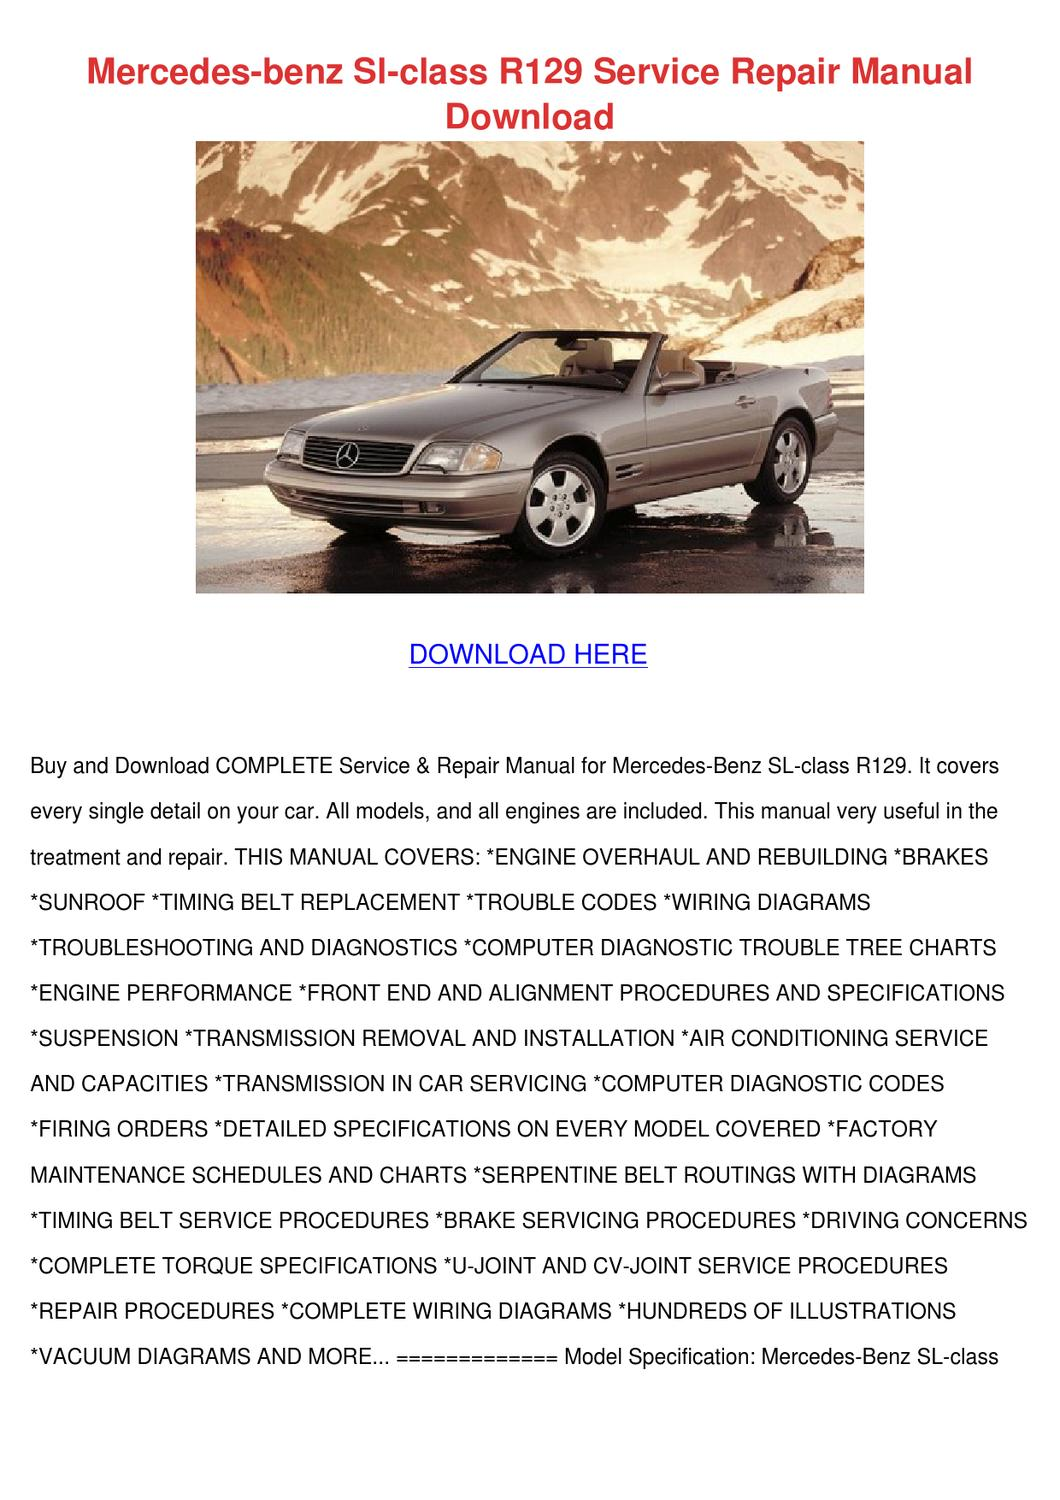 Mercedes Benz Sl Class R129 Service Repair Ma by Mittie Dado